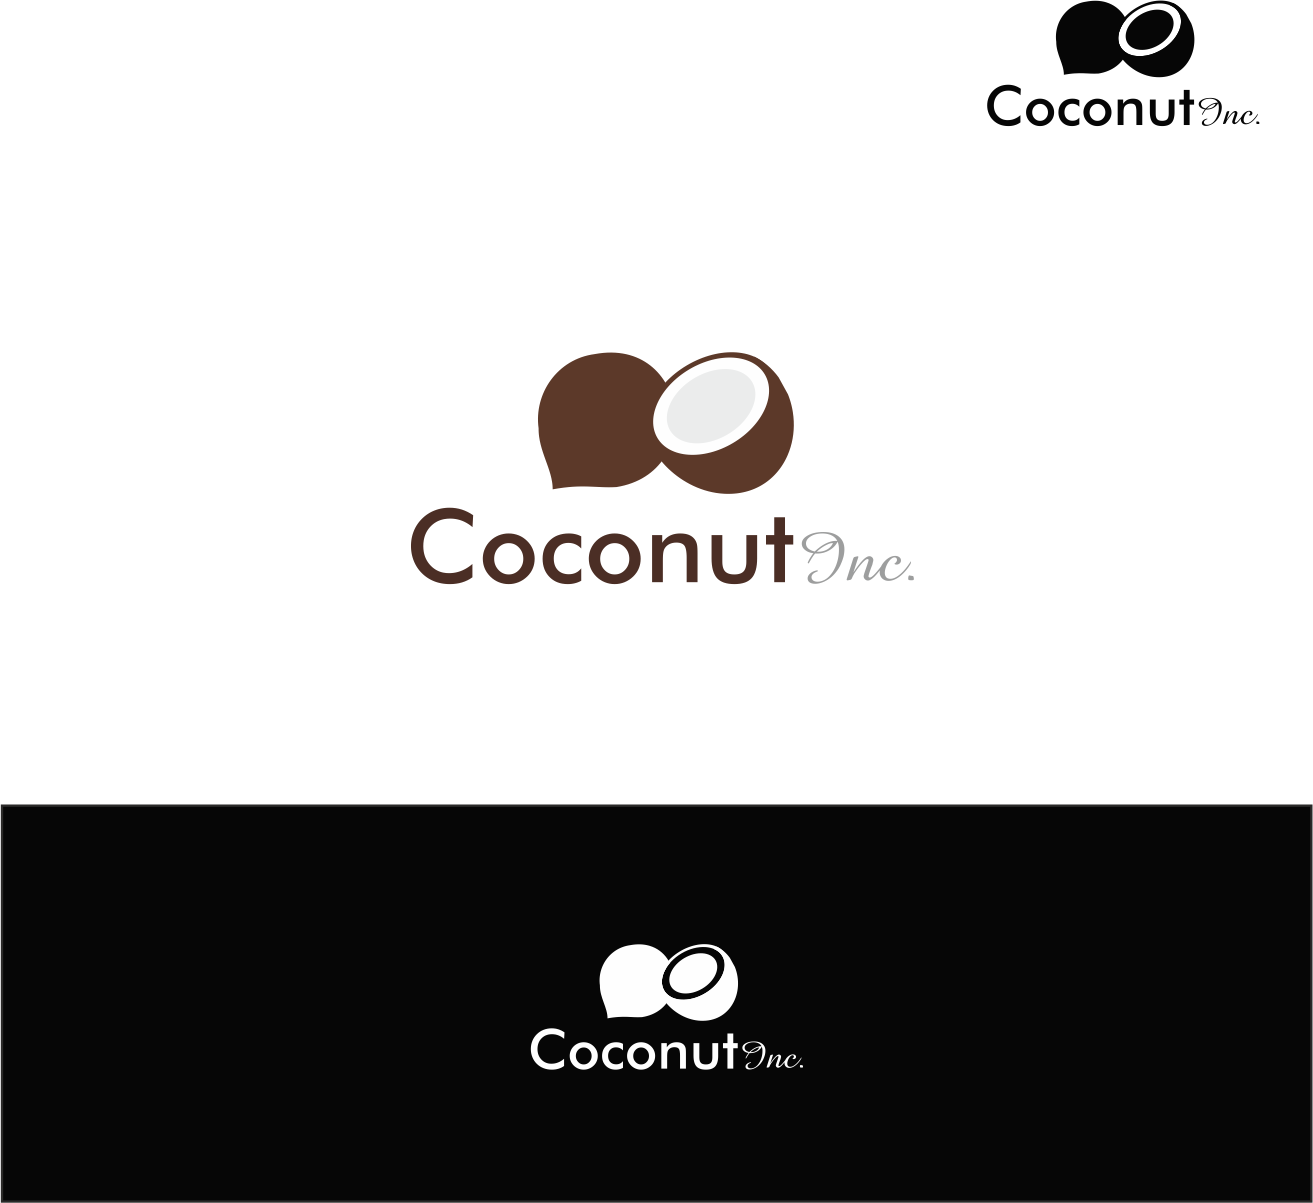 New logo wanted for CoconutInc